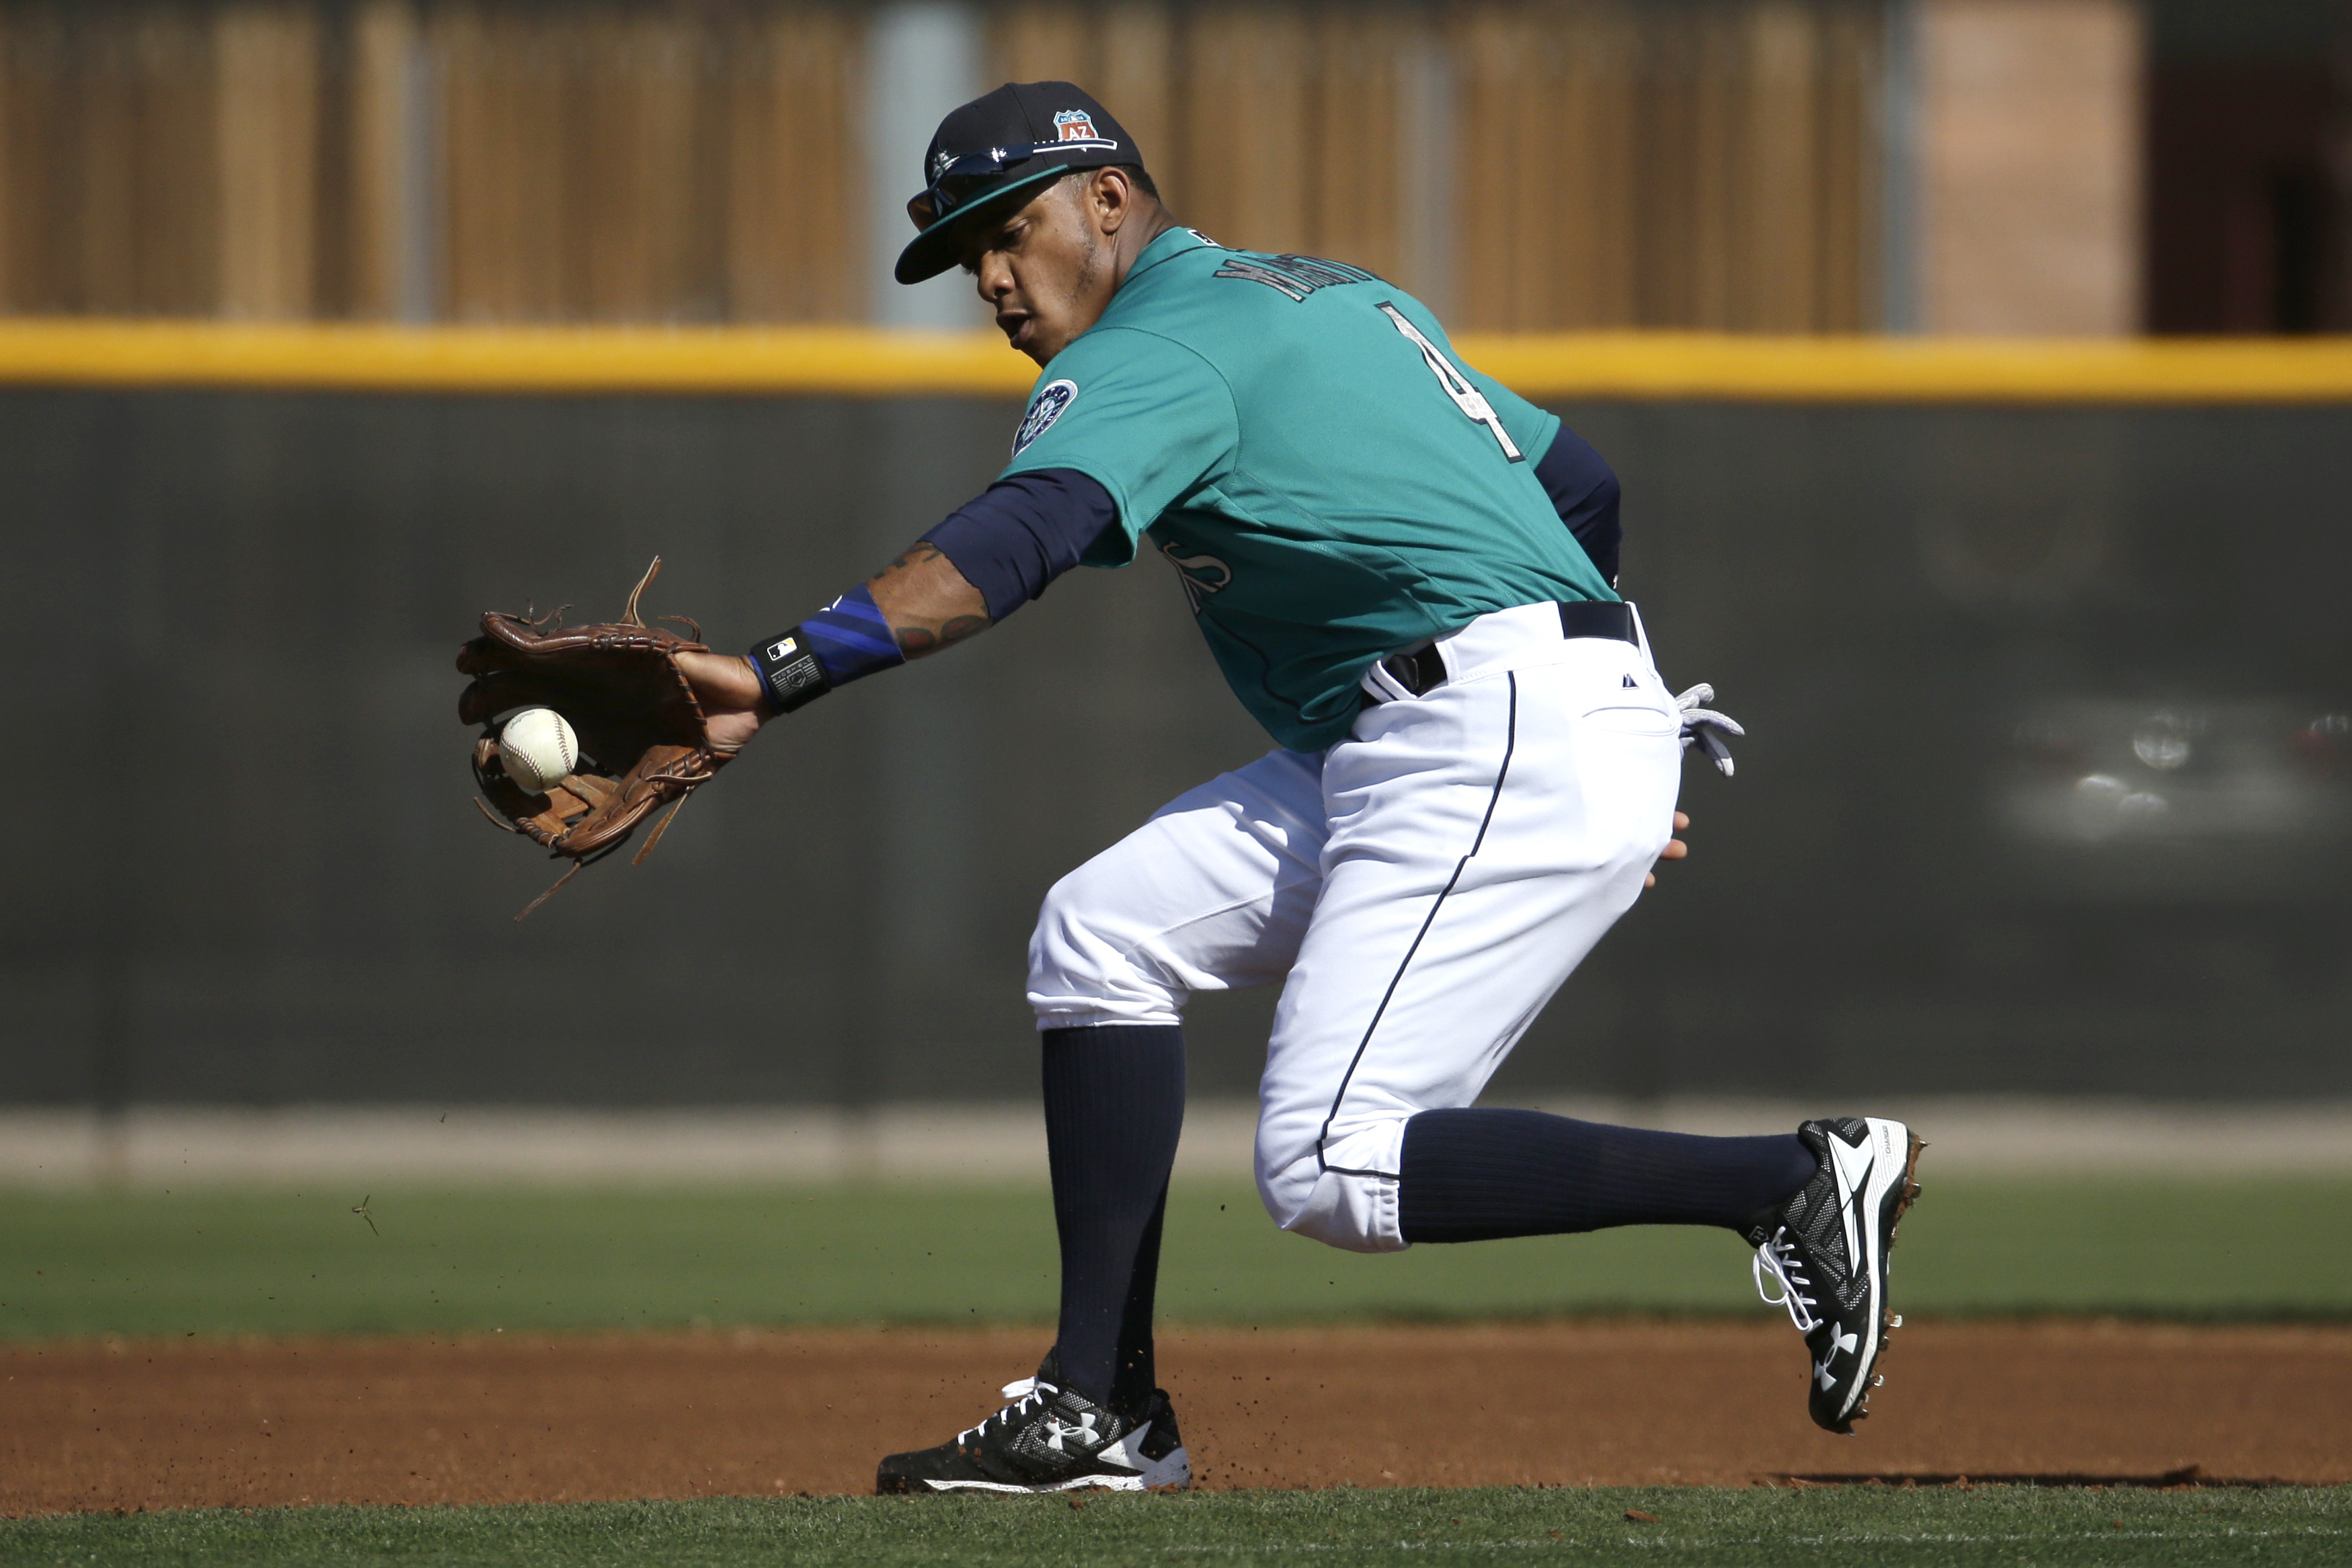 FILE - In this Feb. 26, 2016, file photo, Seattle Mariners' Ketel Marte fields a ball during spring training baseball practice, in Peoria, Ariz. Marte showed enough last season that even the new Seattle Mariners coaching staff believed he could be their s